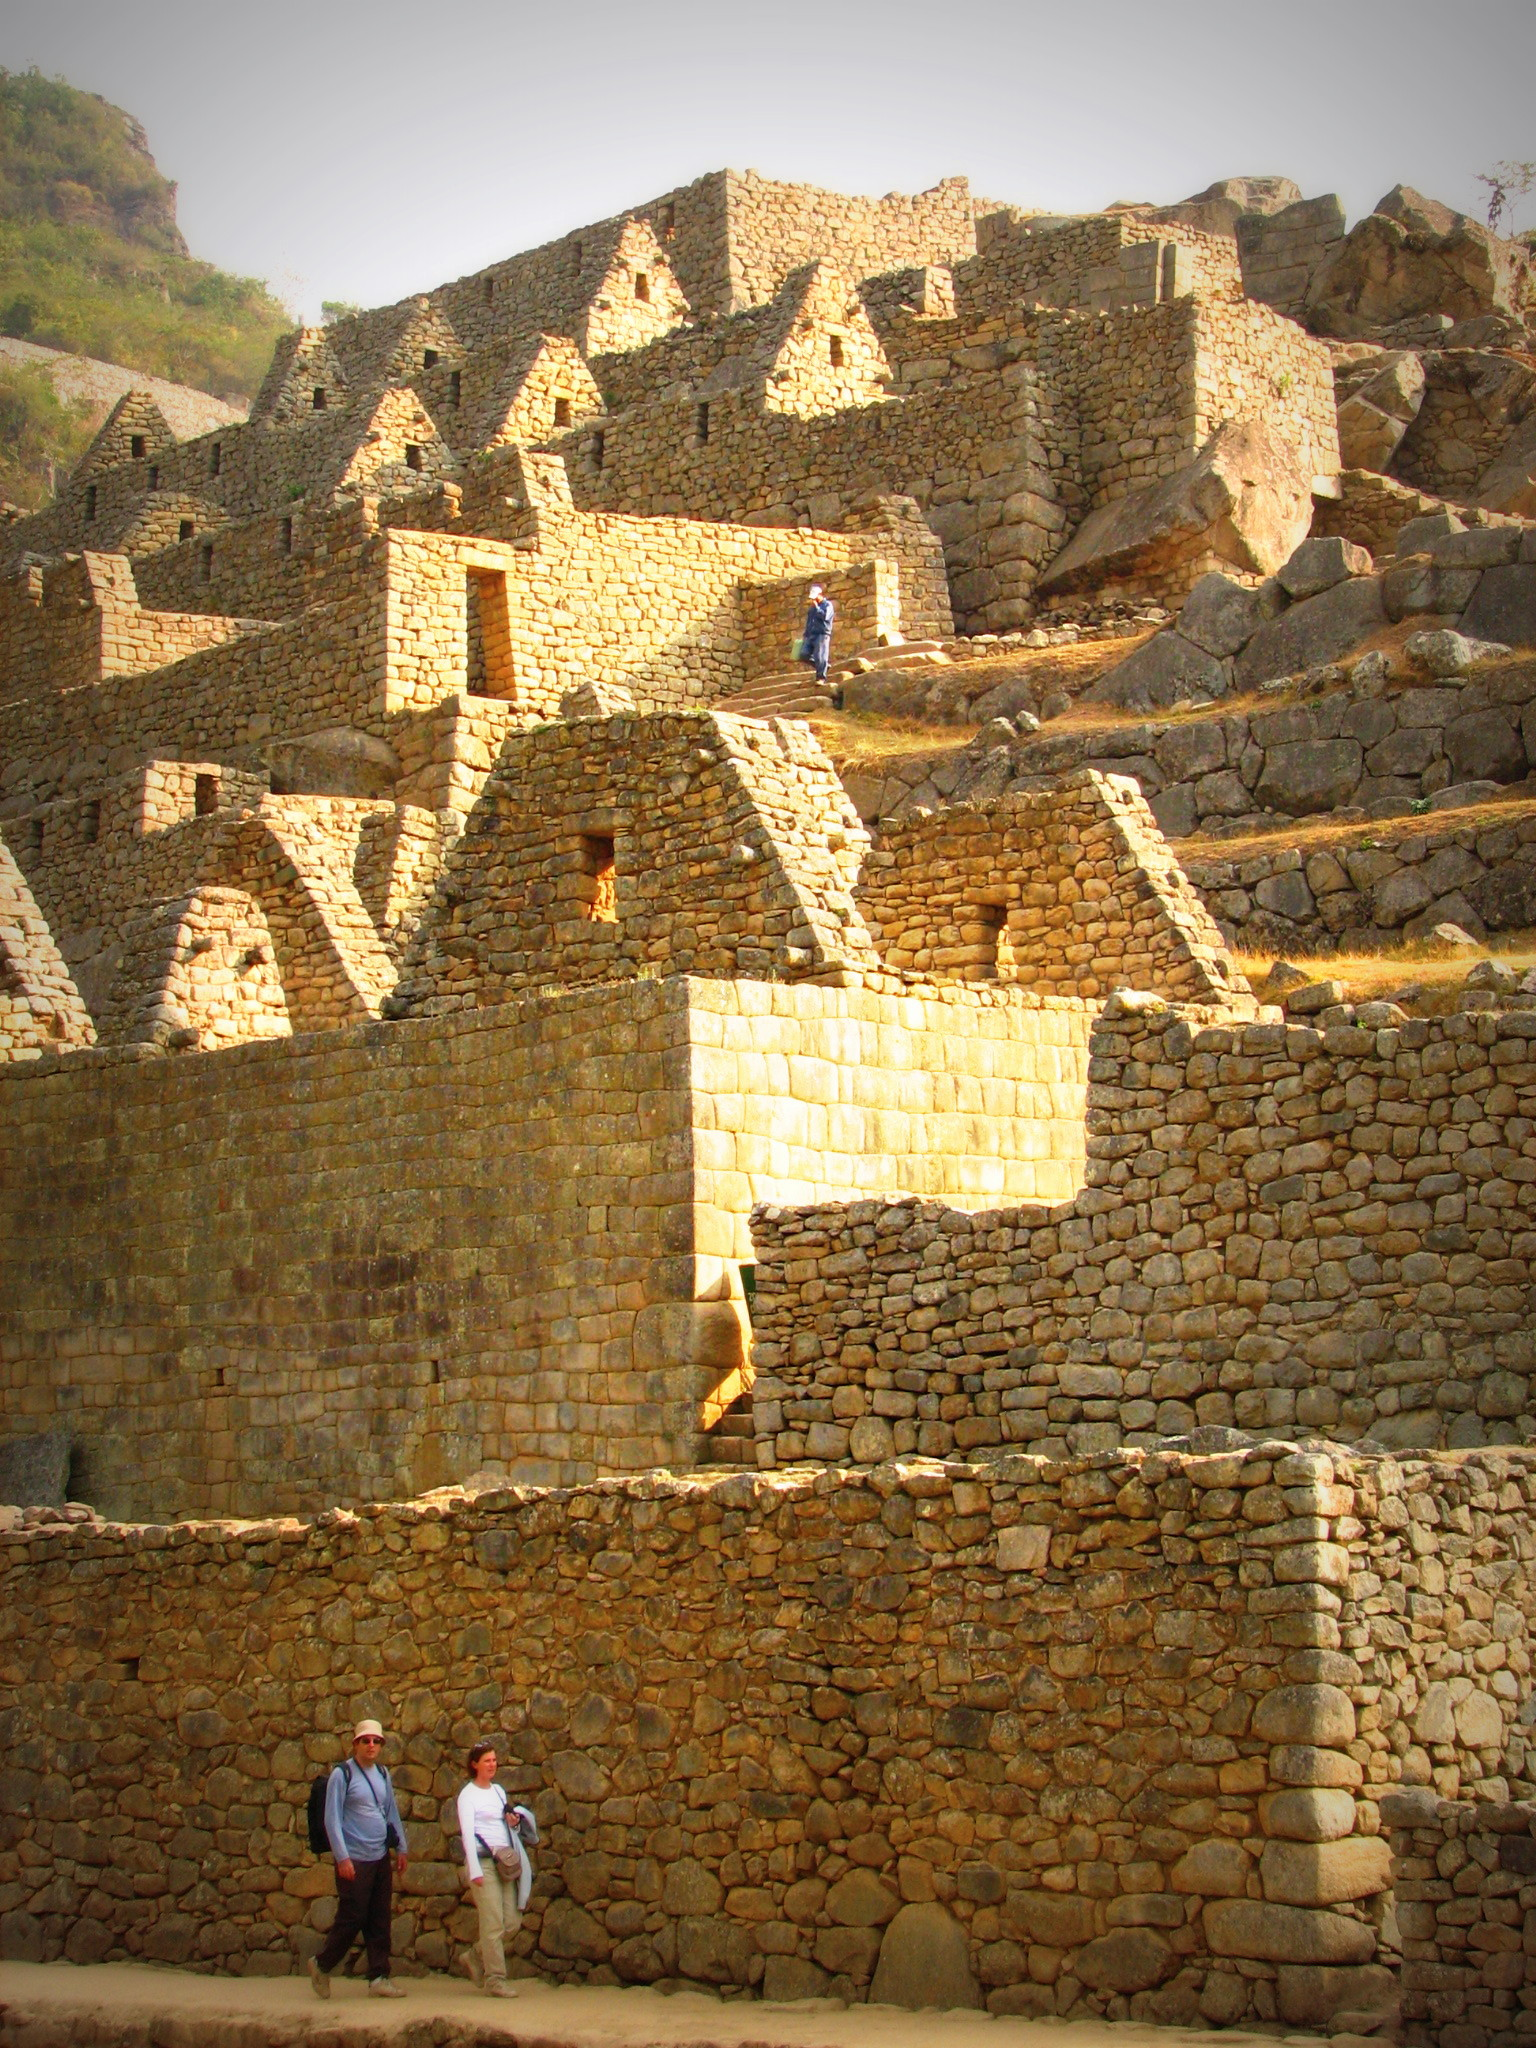 Houses of the Machu Picchu